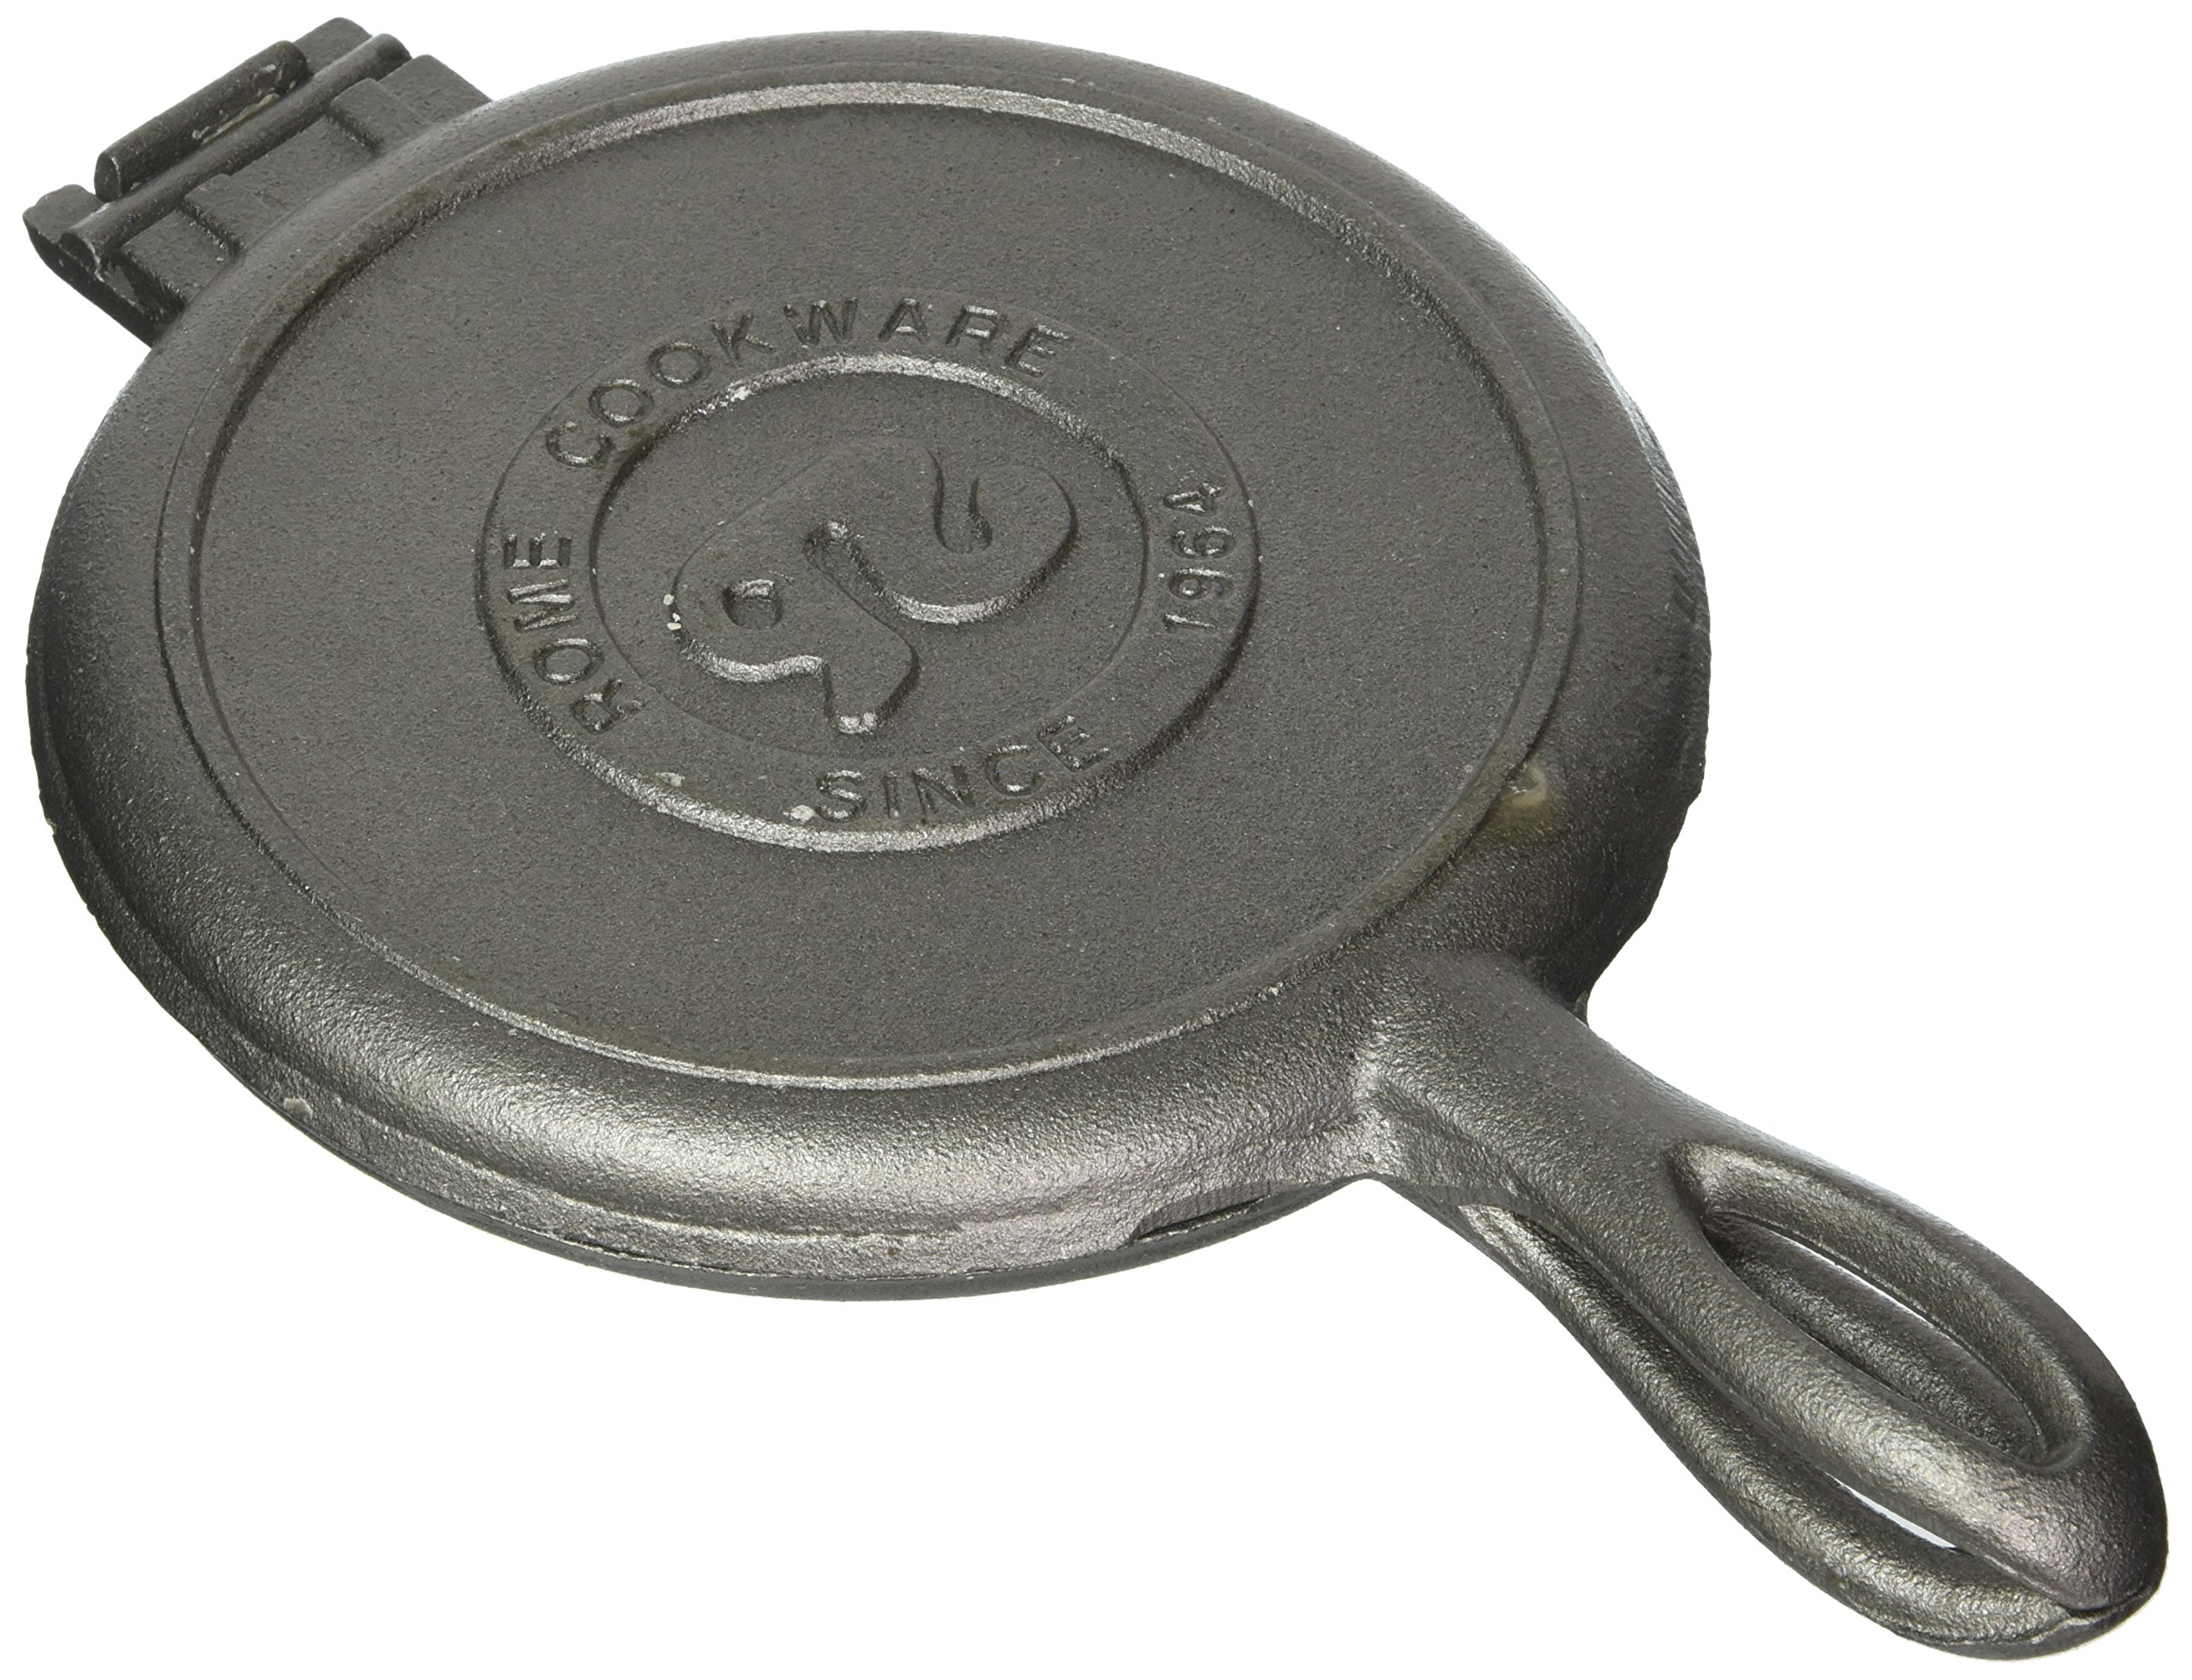 Solid Cast Iron Old Fashioned Waffle Iron by Rome's Original by Rome's Original (Image #1)